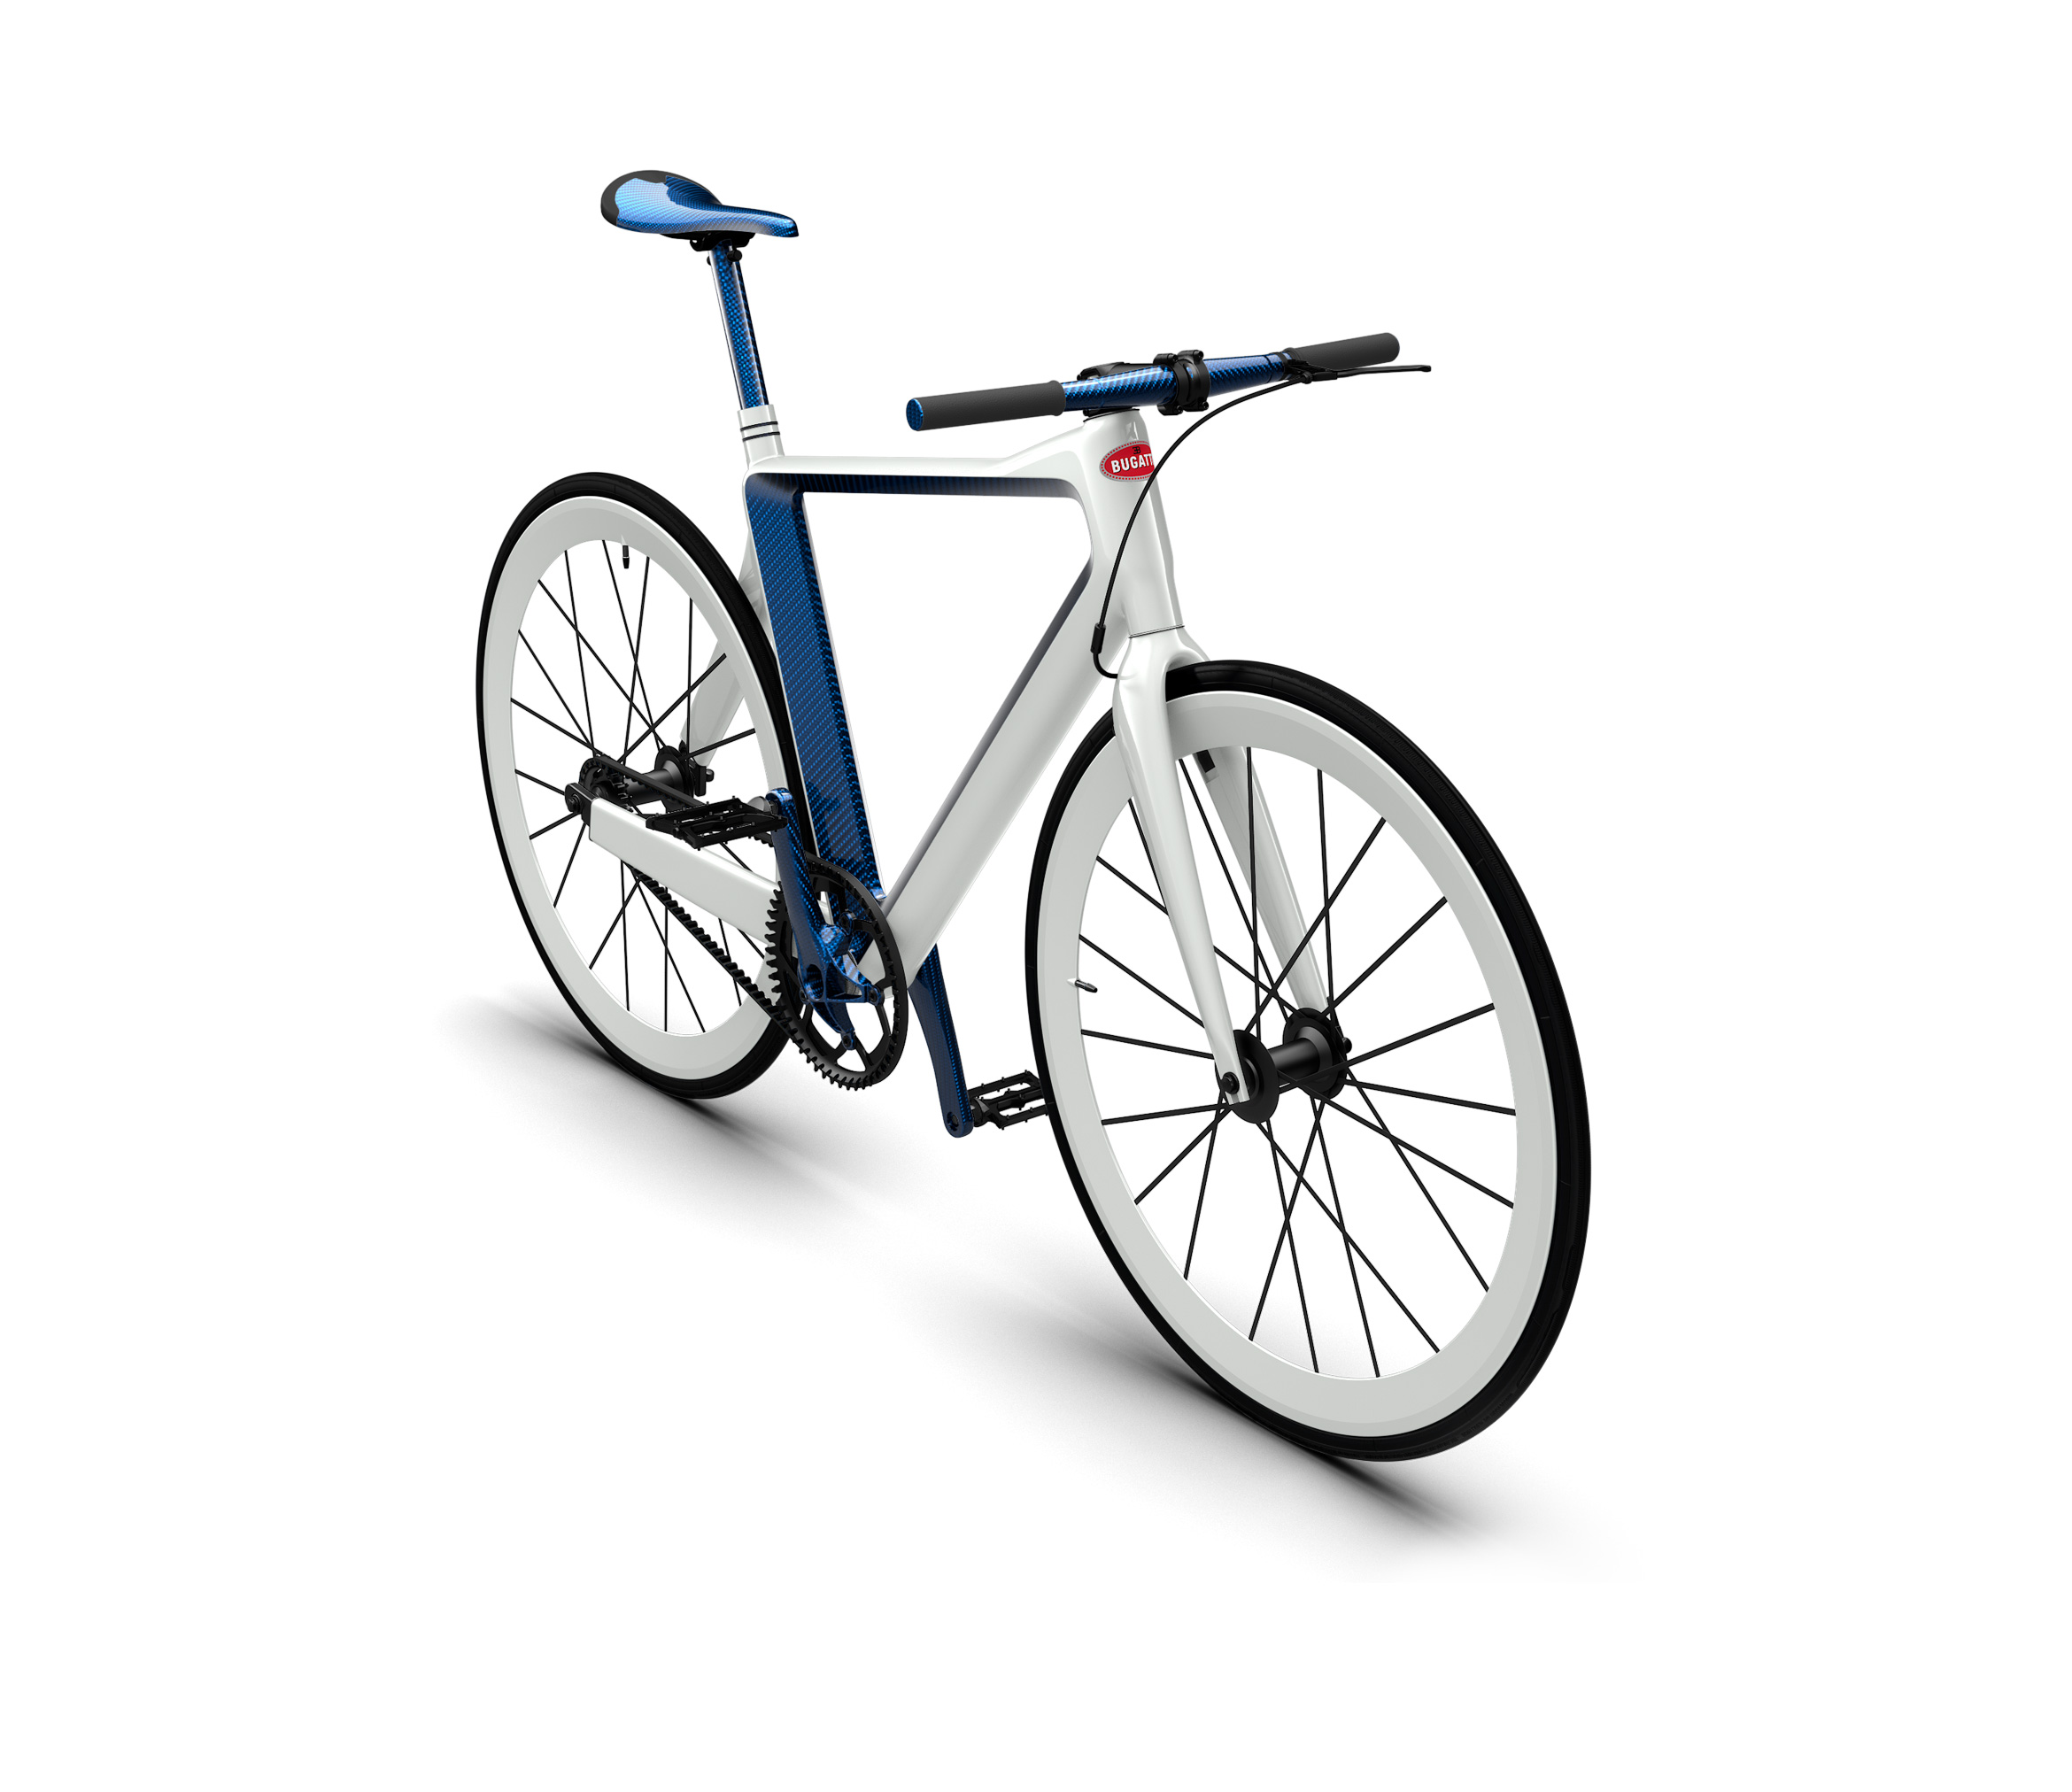 PG Bugatti bicycle (18)